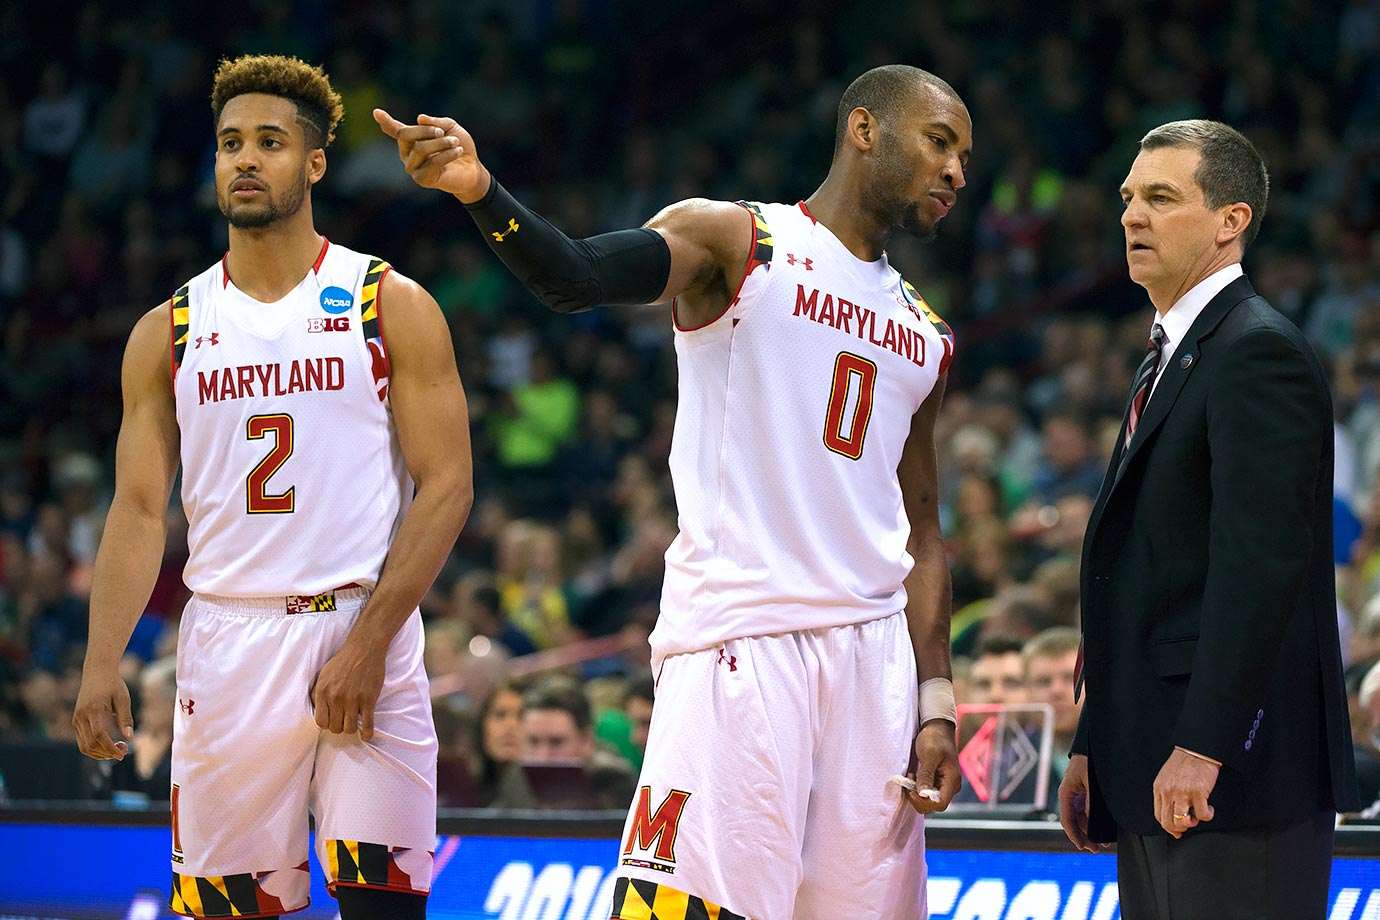 Why won't the Terrapins win it all? Well, they have to play Kansas in the Sweet 16. Maryland did not win one game this season in which they were the underdogs. Kansas is favored by 6.5 points on Thursday.